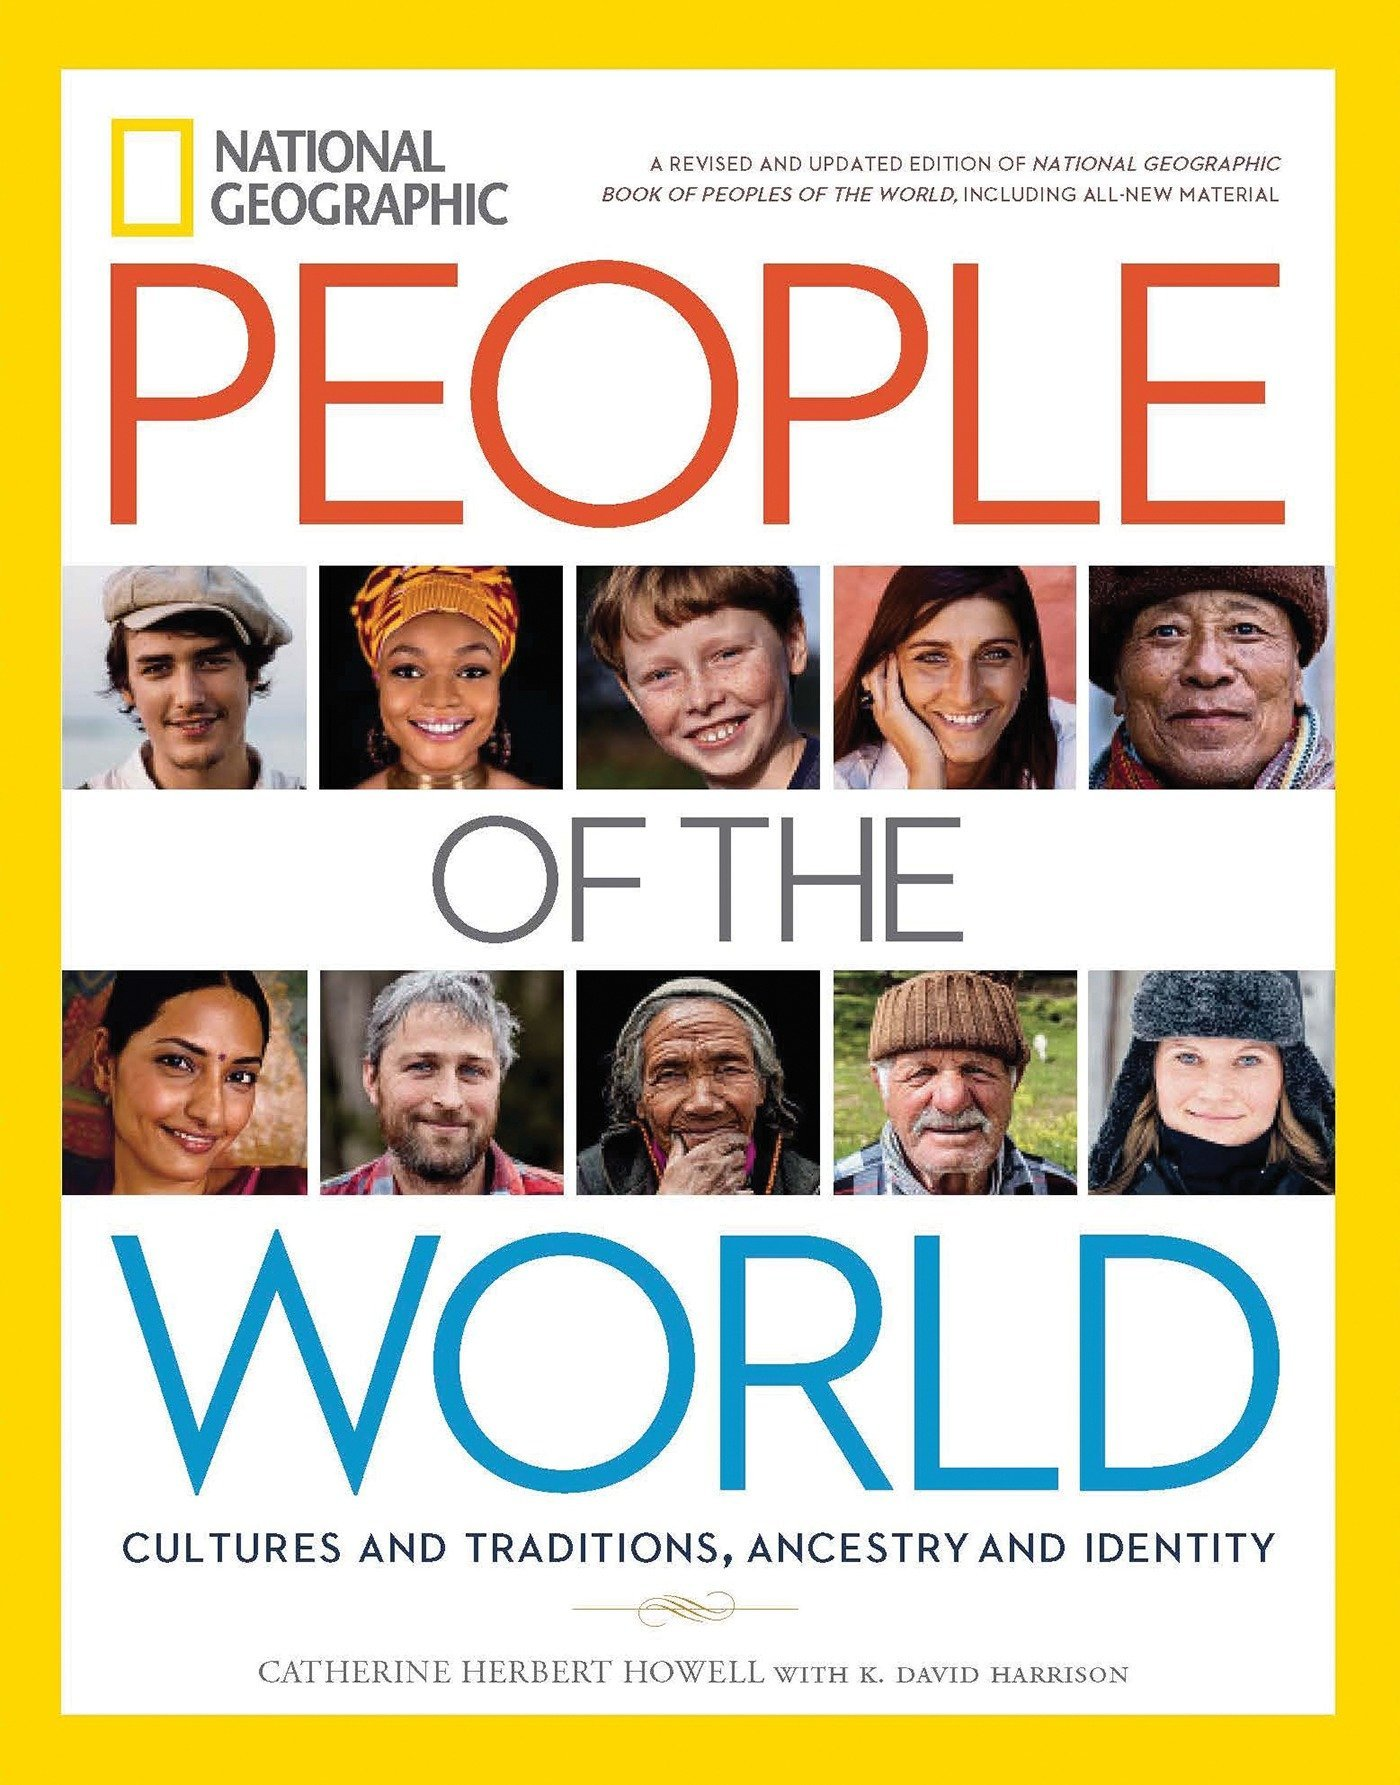 National Geographic People of the World: Cultures and Traditions, Ancestry  and Identity: Howell, Catherine H., Harrison, K. David, Wells, Spencer:  9781426217081: Amazon.com: Books